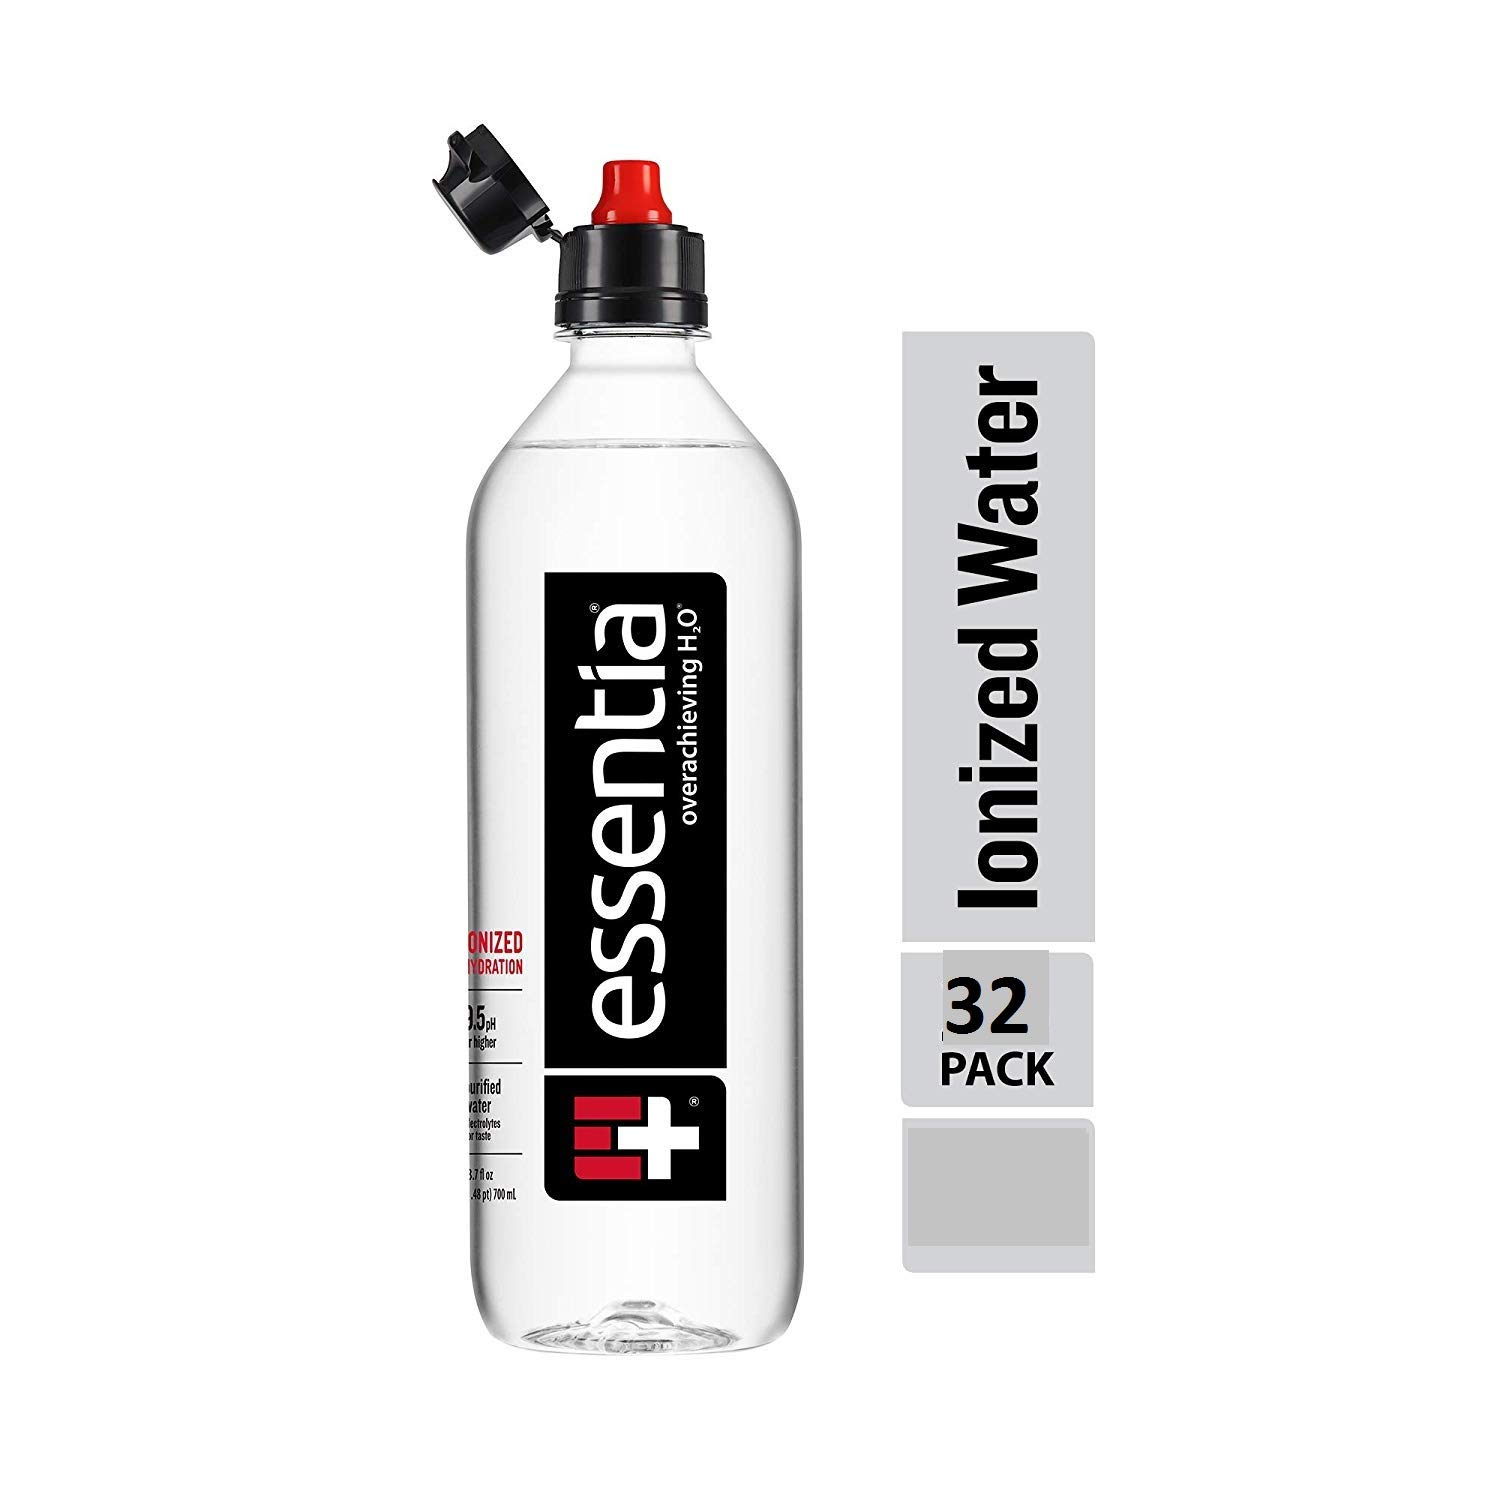 Essentia Water; 700-ml Bottle; 32 pack; Ionized Alkaline Water with 9.5 pH or Higher; Purified Drinking Water Infused with Electrolytes for a Clean and Smooth Taste; Sports cap (Pack of 32)